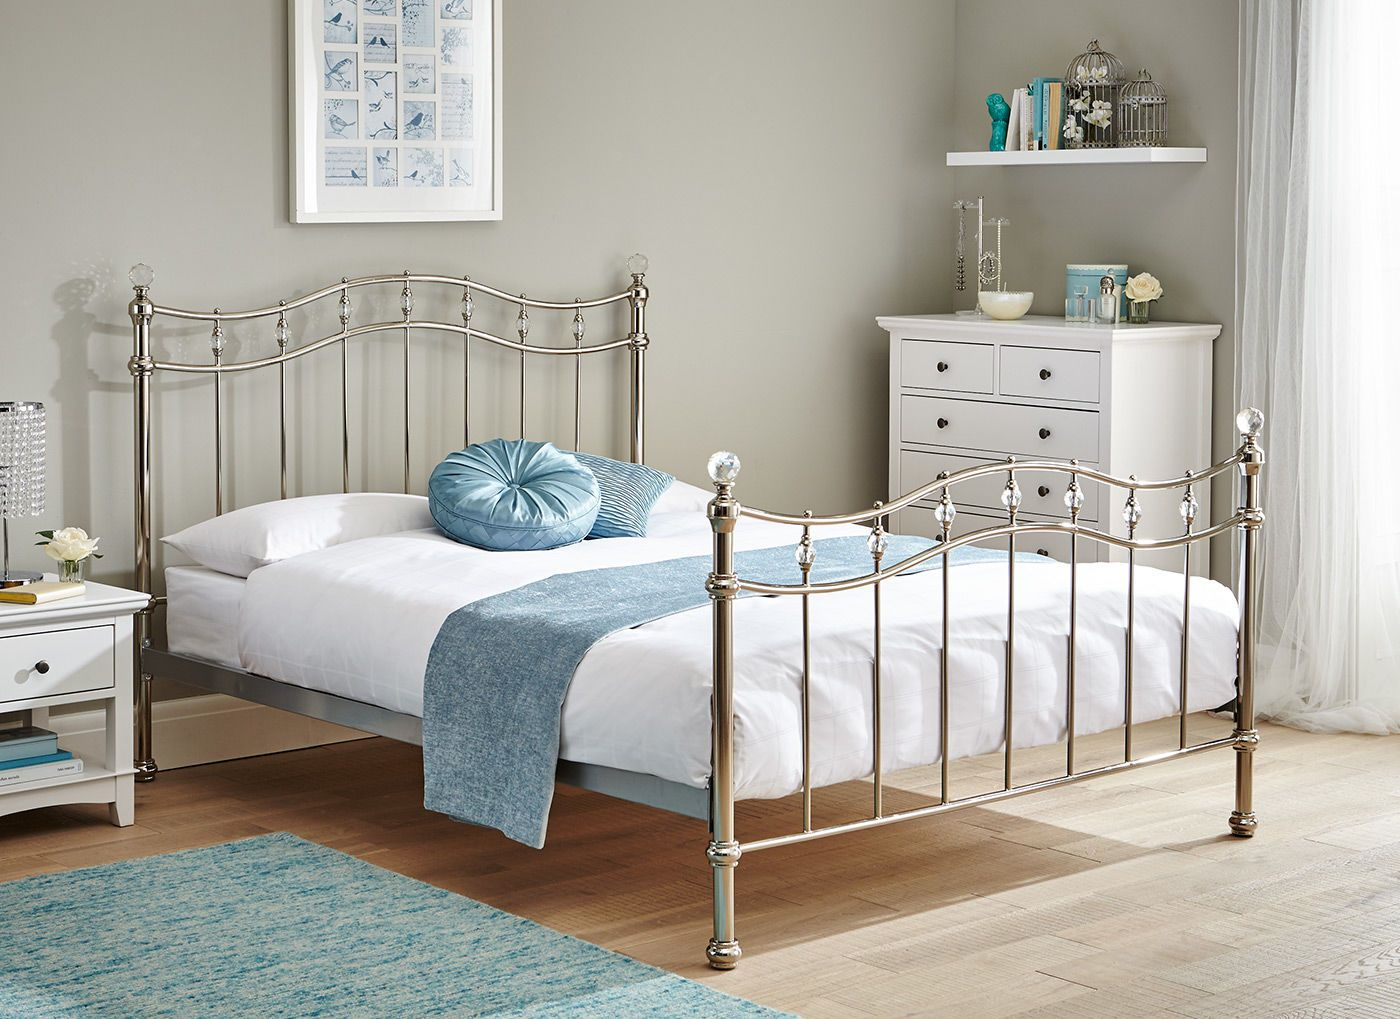 Louis Chrome Metal Bed Frame Bedroom Pinterest Metal beds